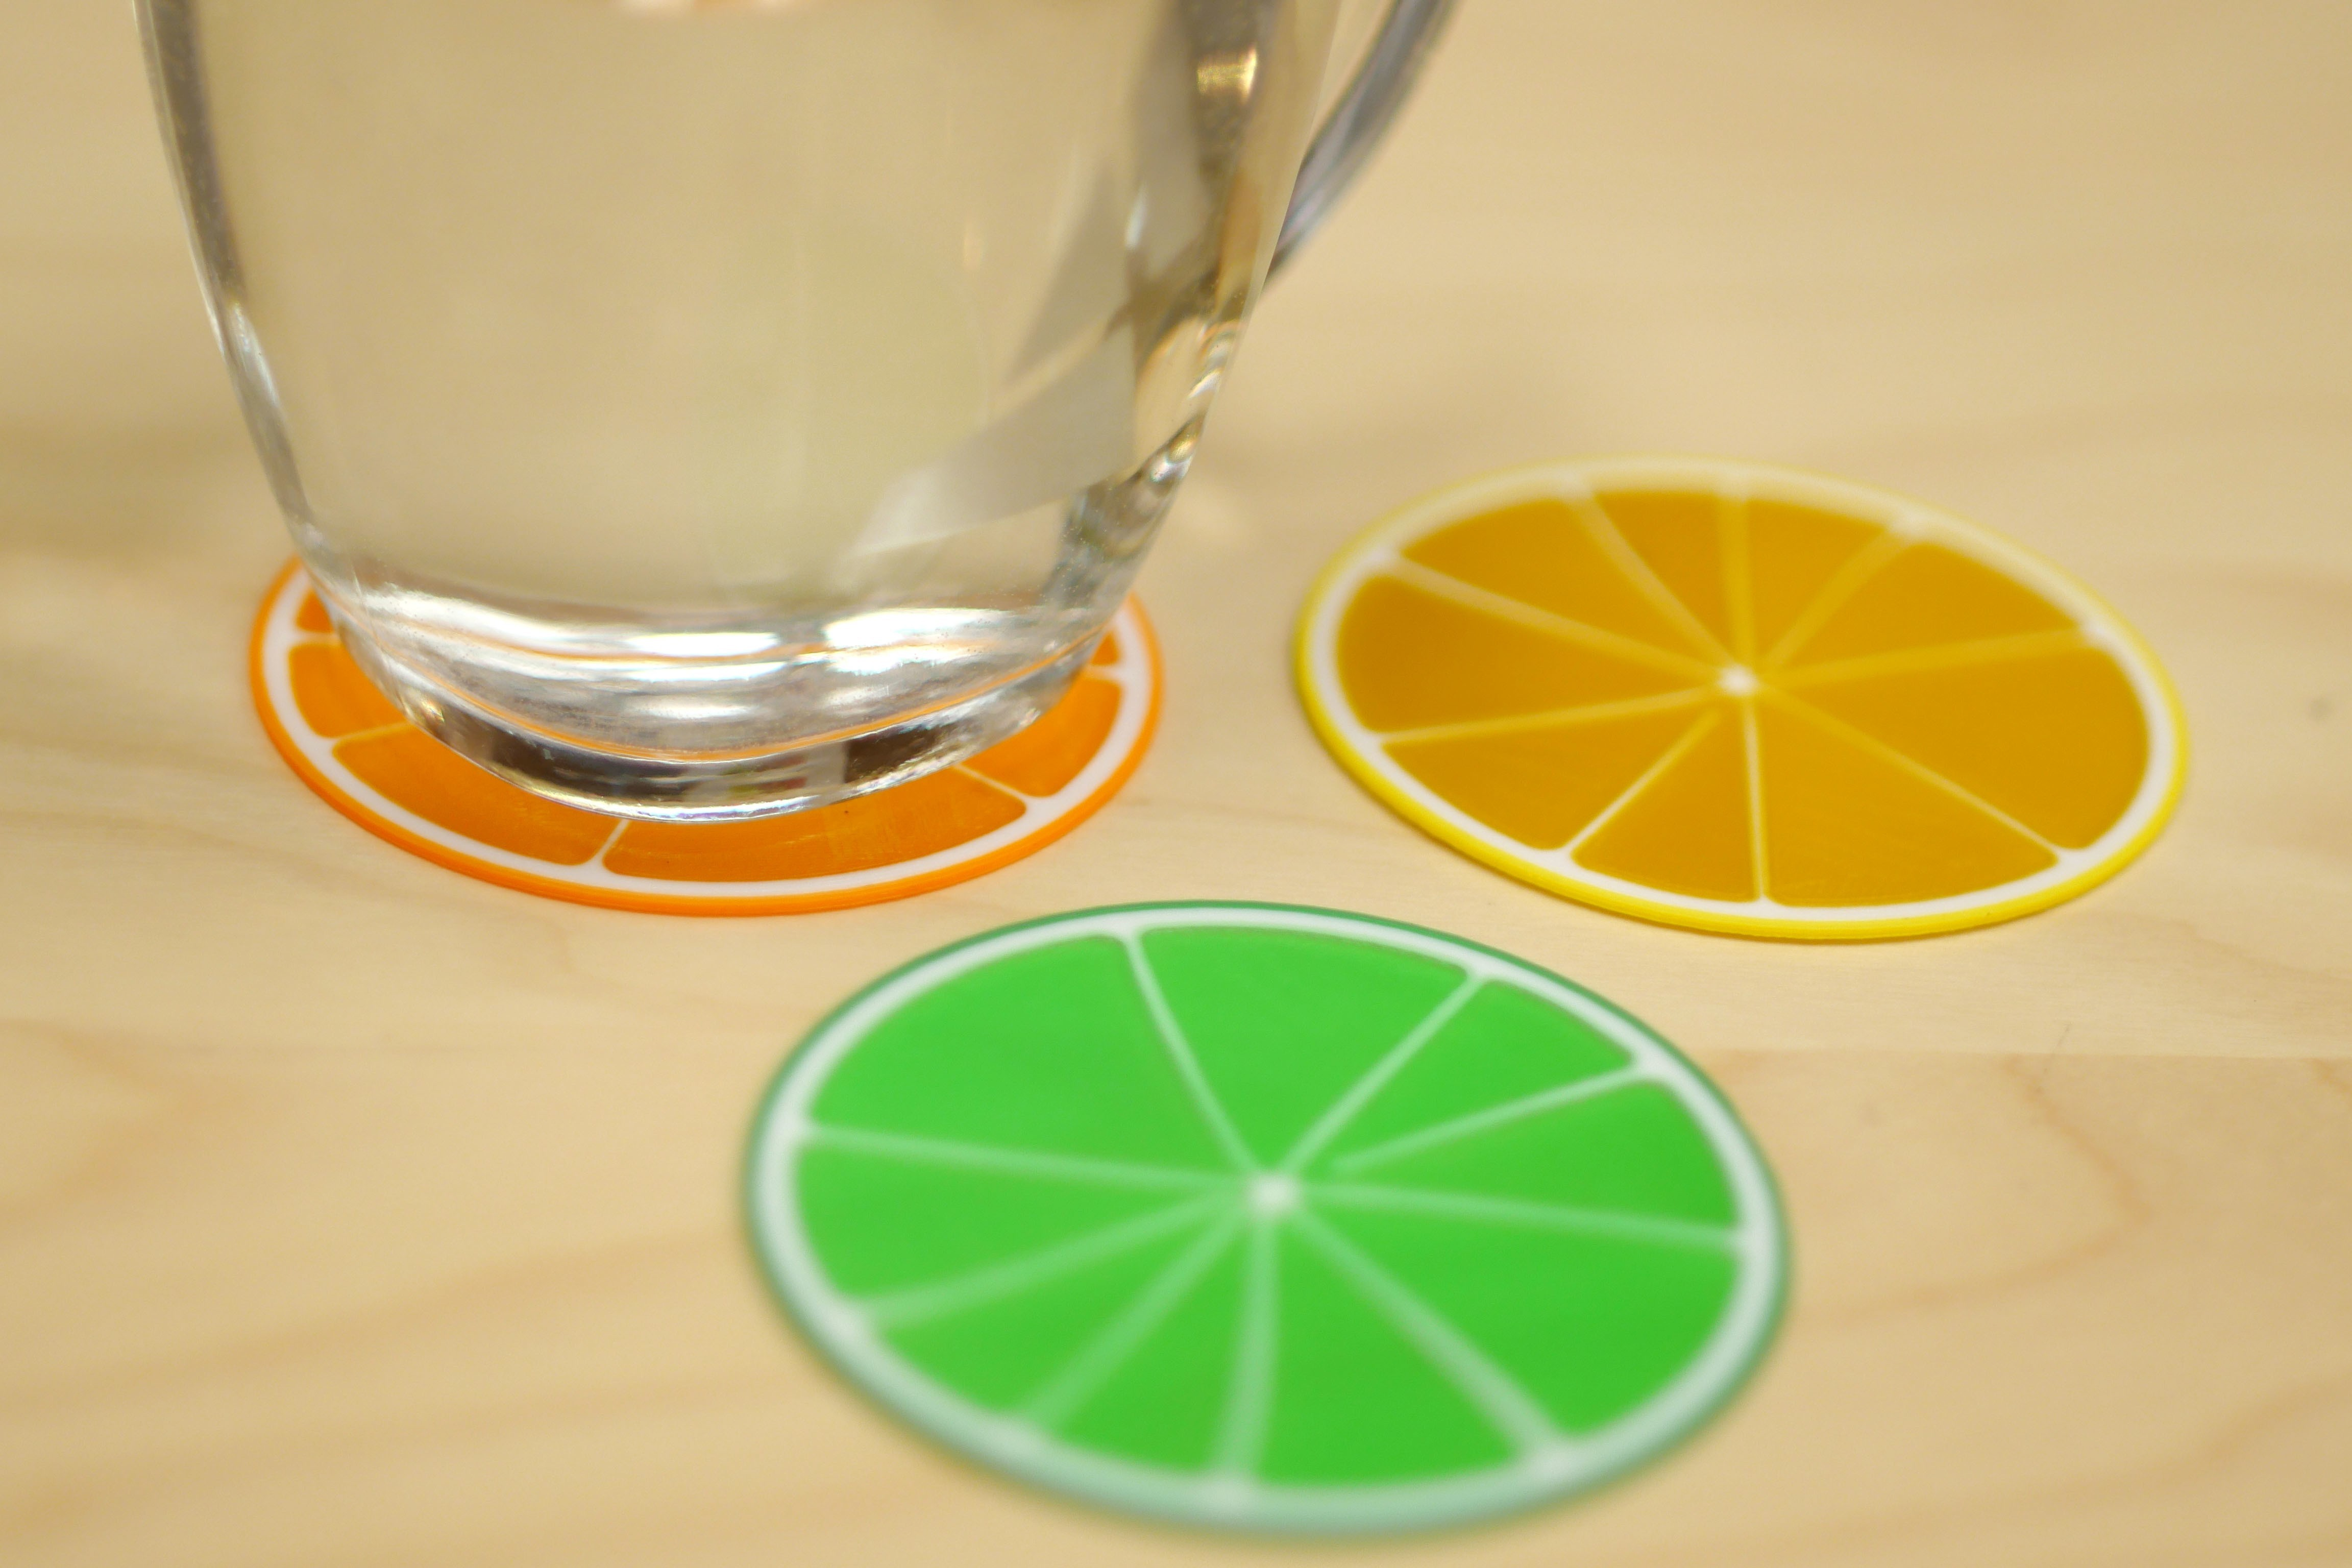 Citrus slices pic 1.jpg Download free STL file Citrus Coasters • 3D printing model, MosaicManufacturing